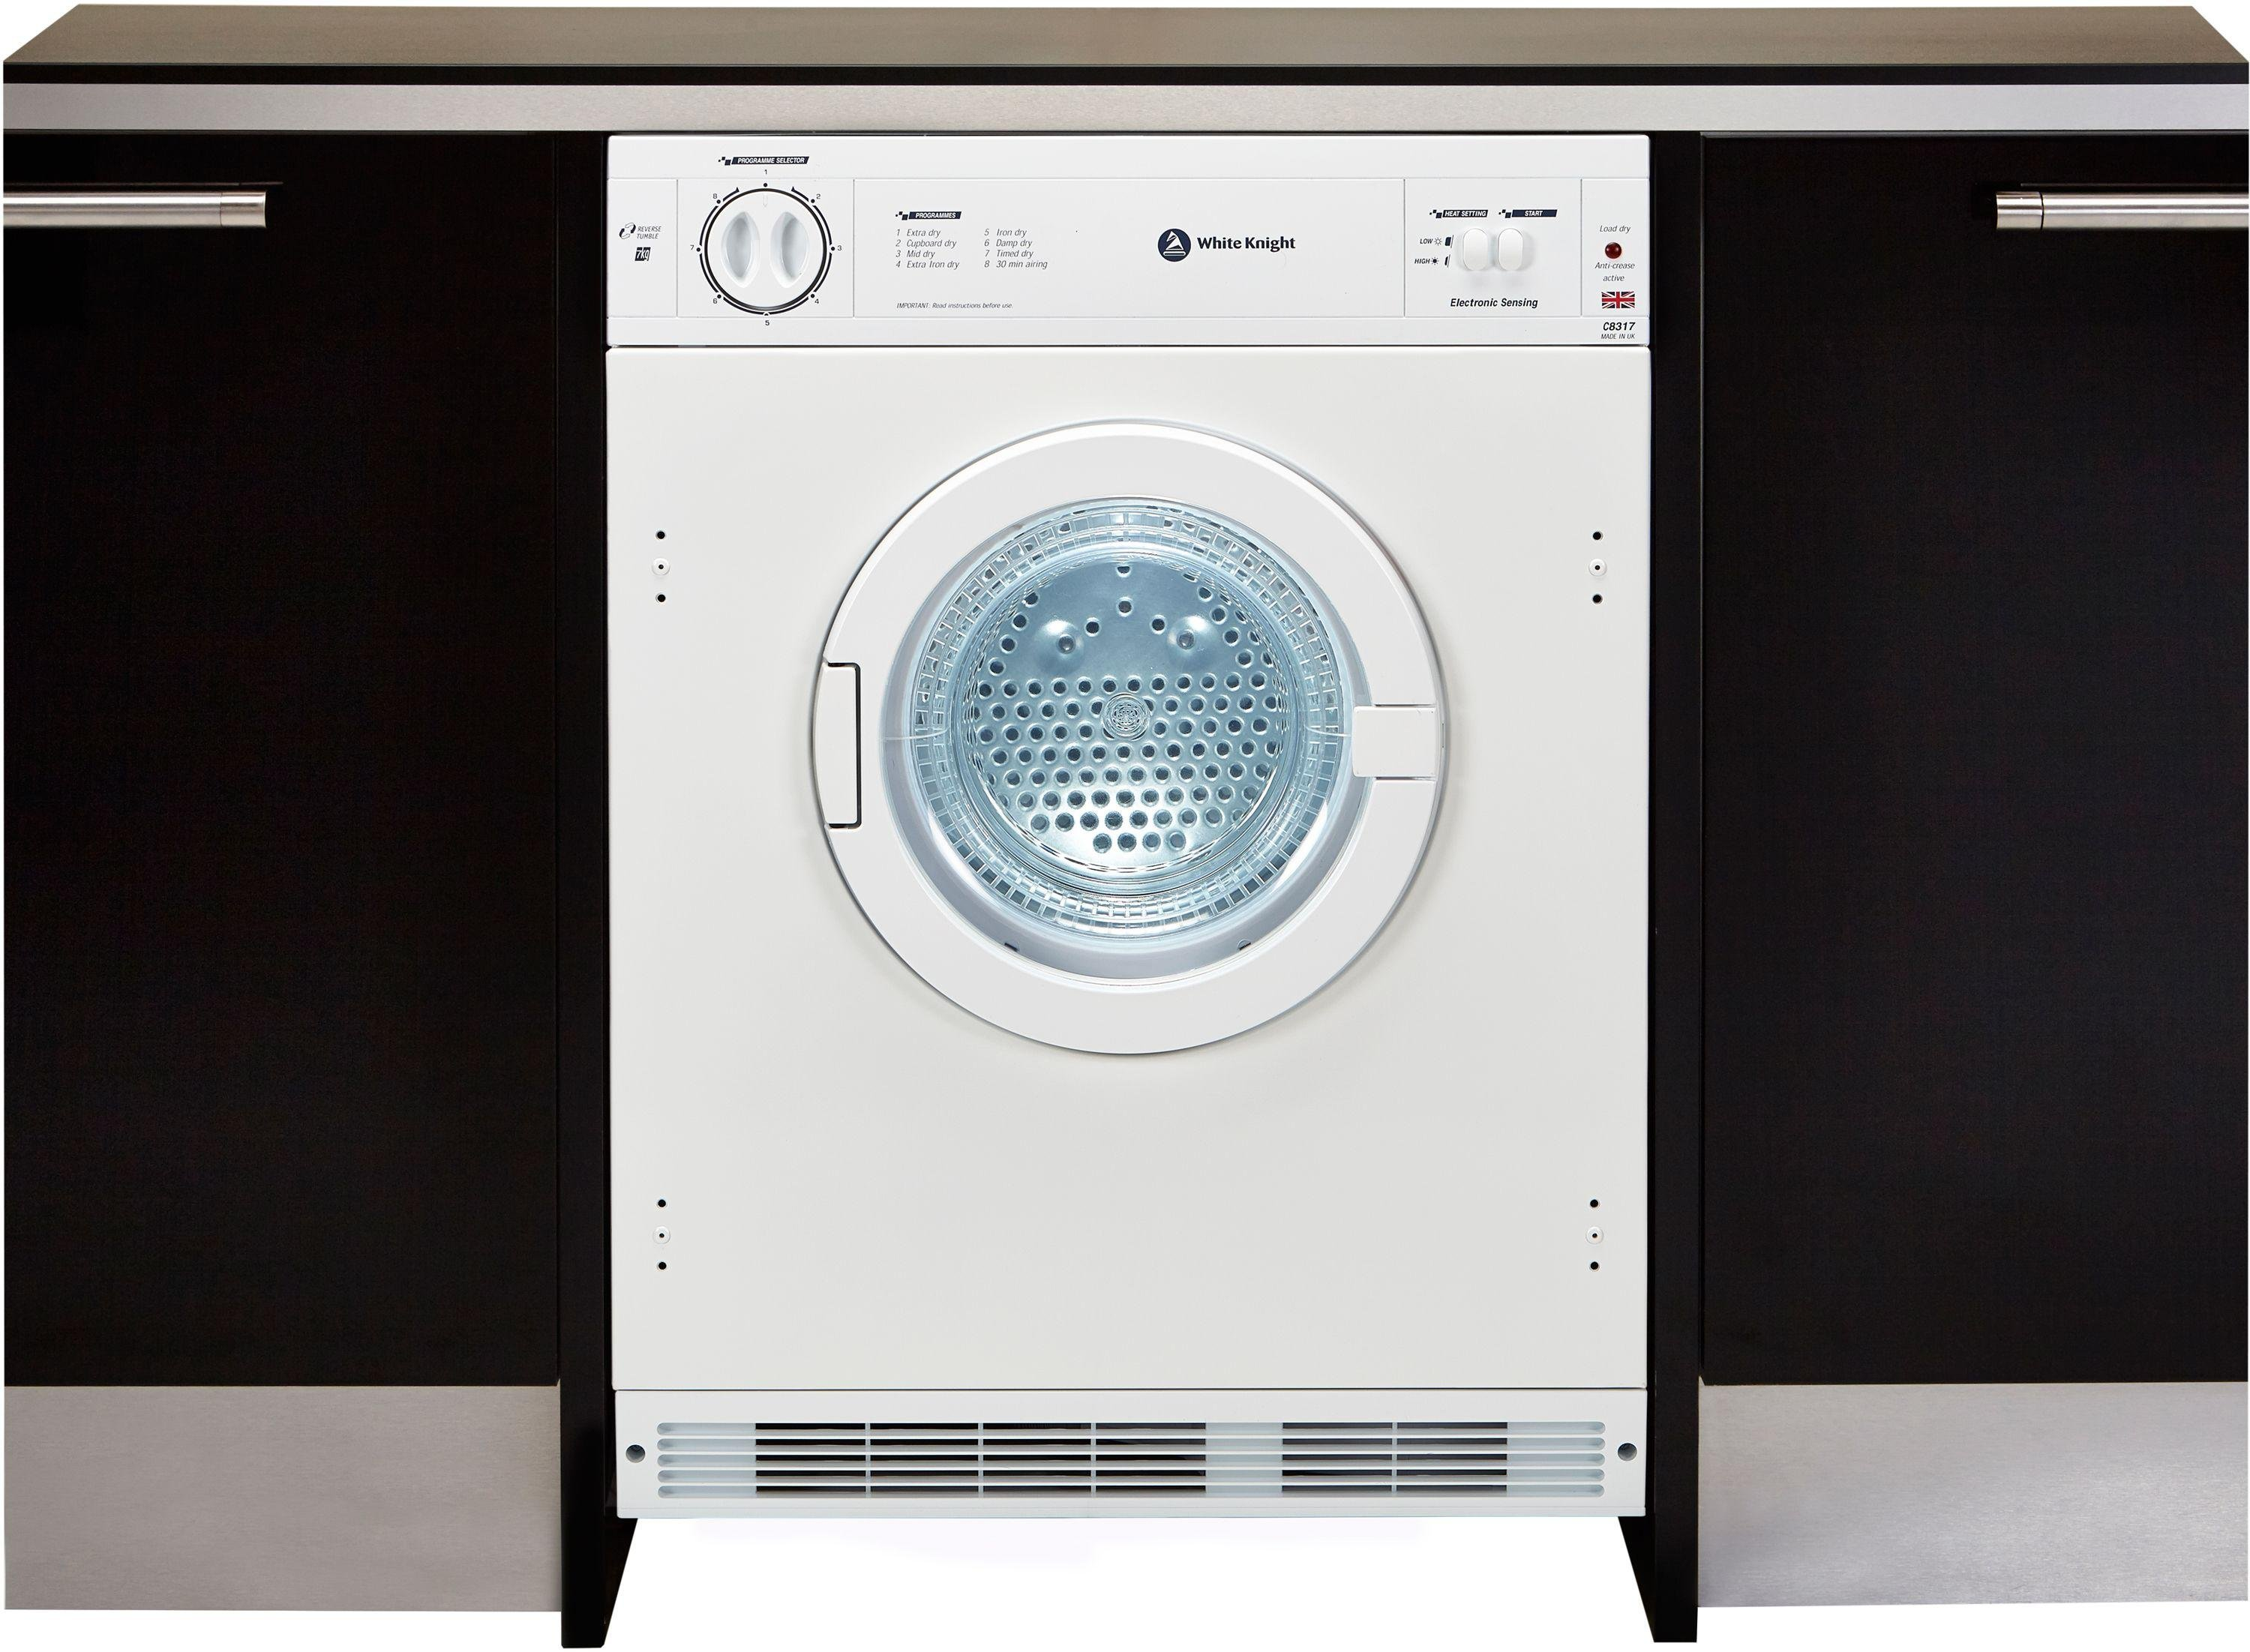 Sale On White Knight C8317wv Integrated Tumble Dryer